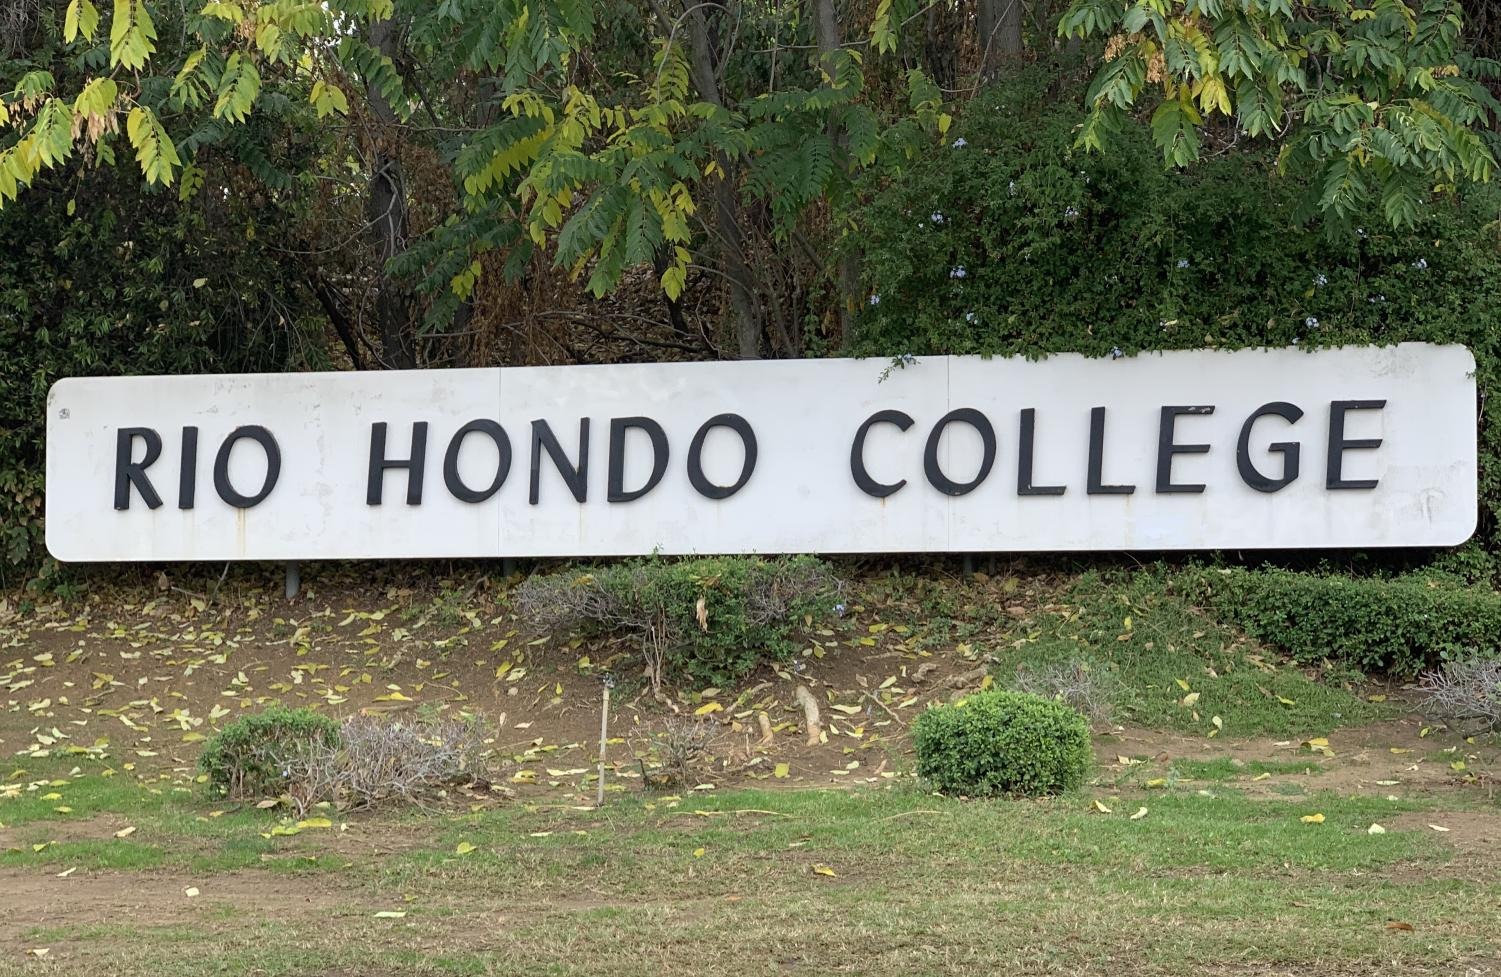 Rio Hondo College is providing more online opportunities to the diverse population of students in Fall 2020.